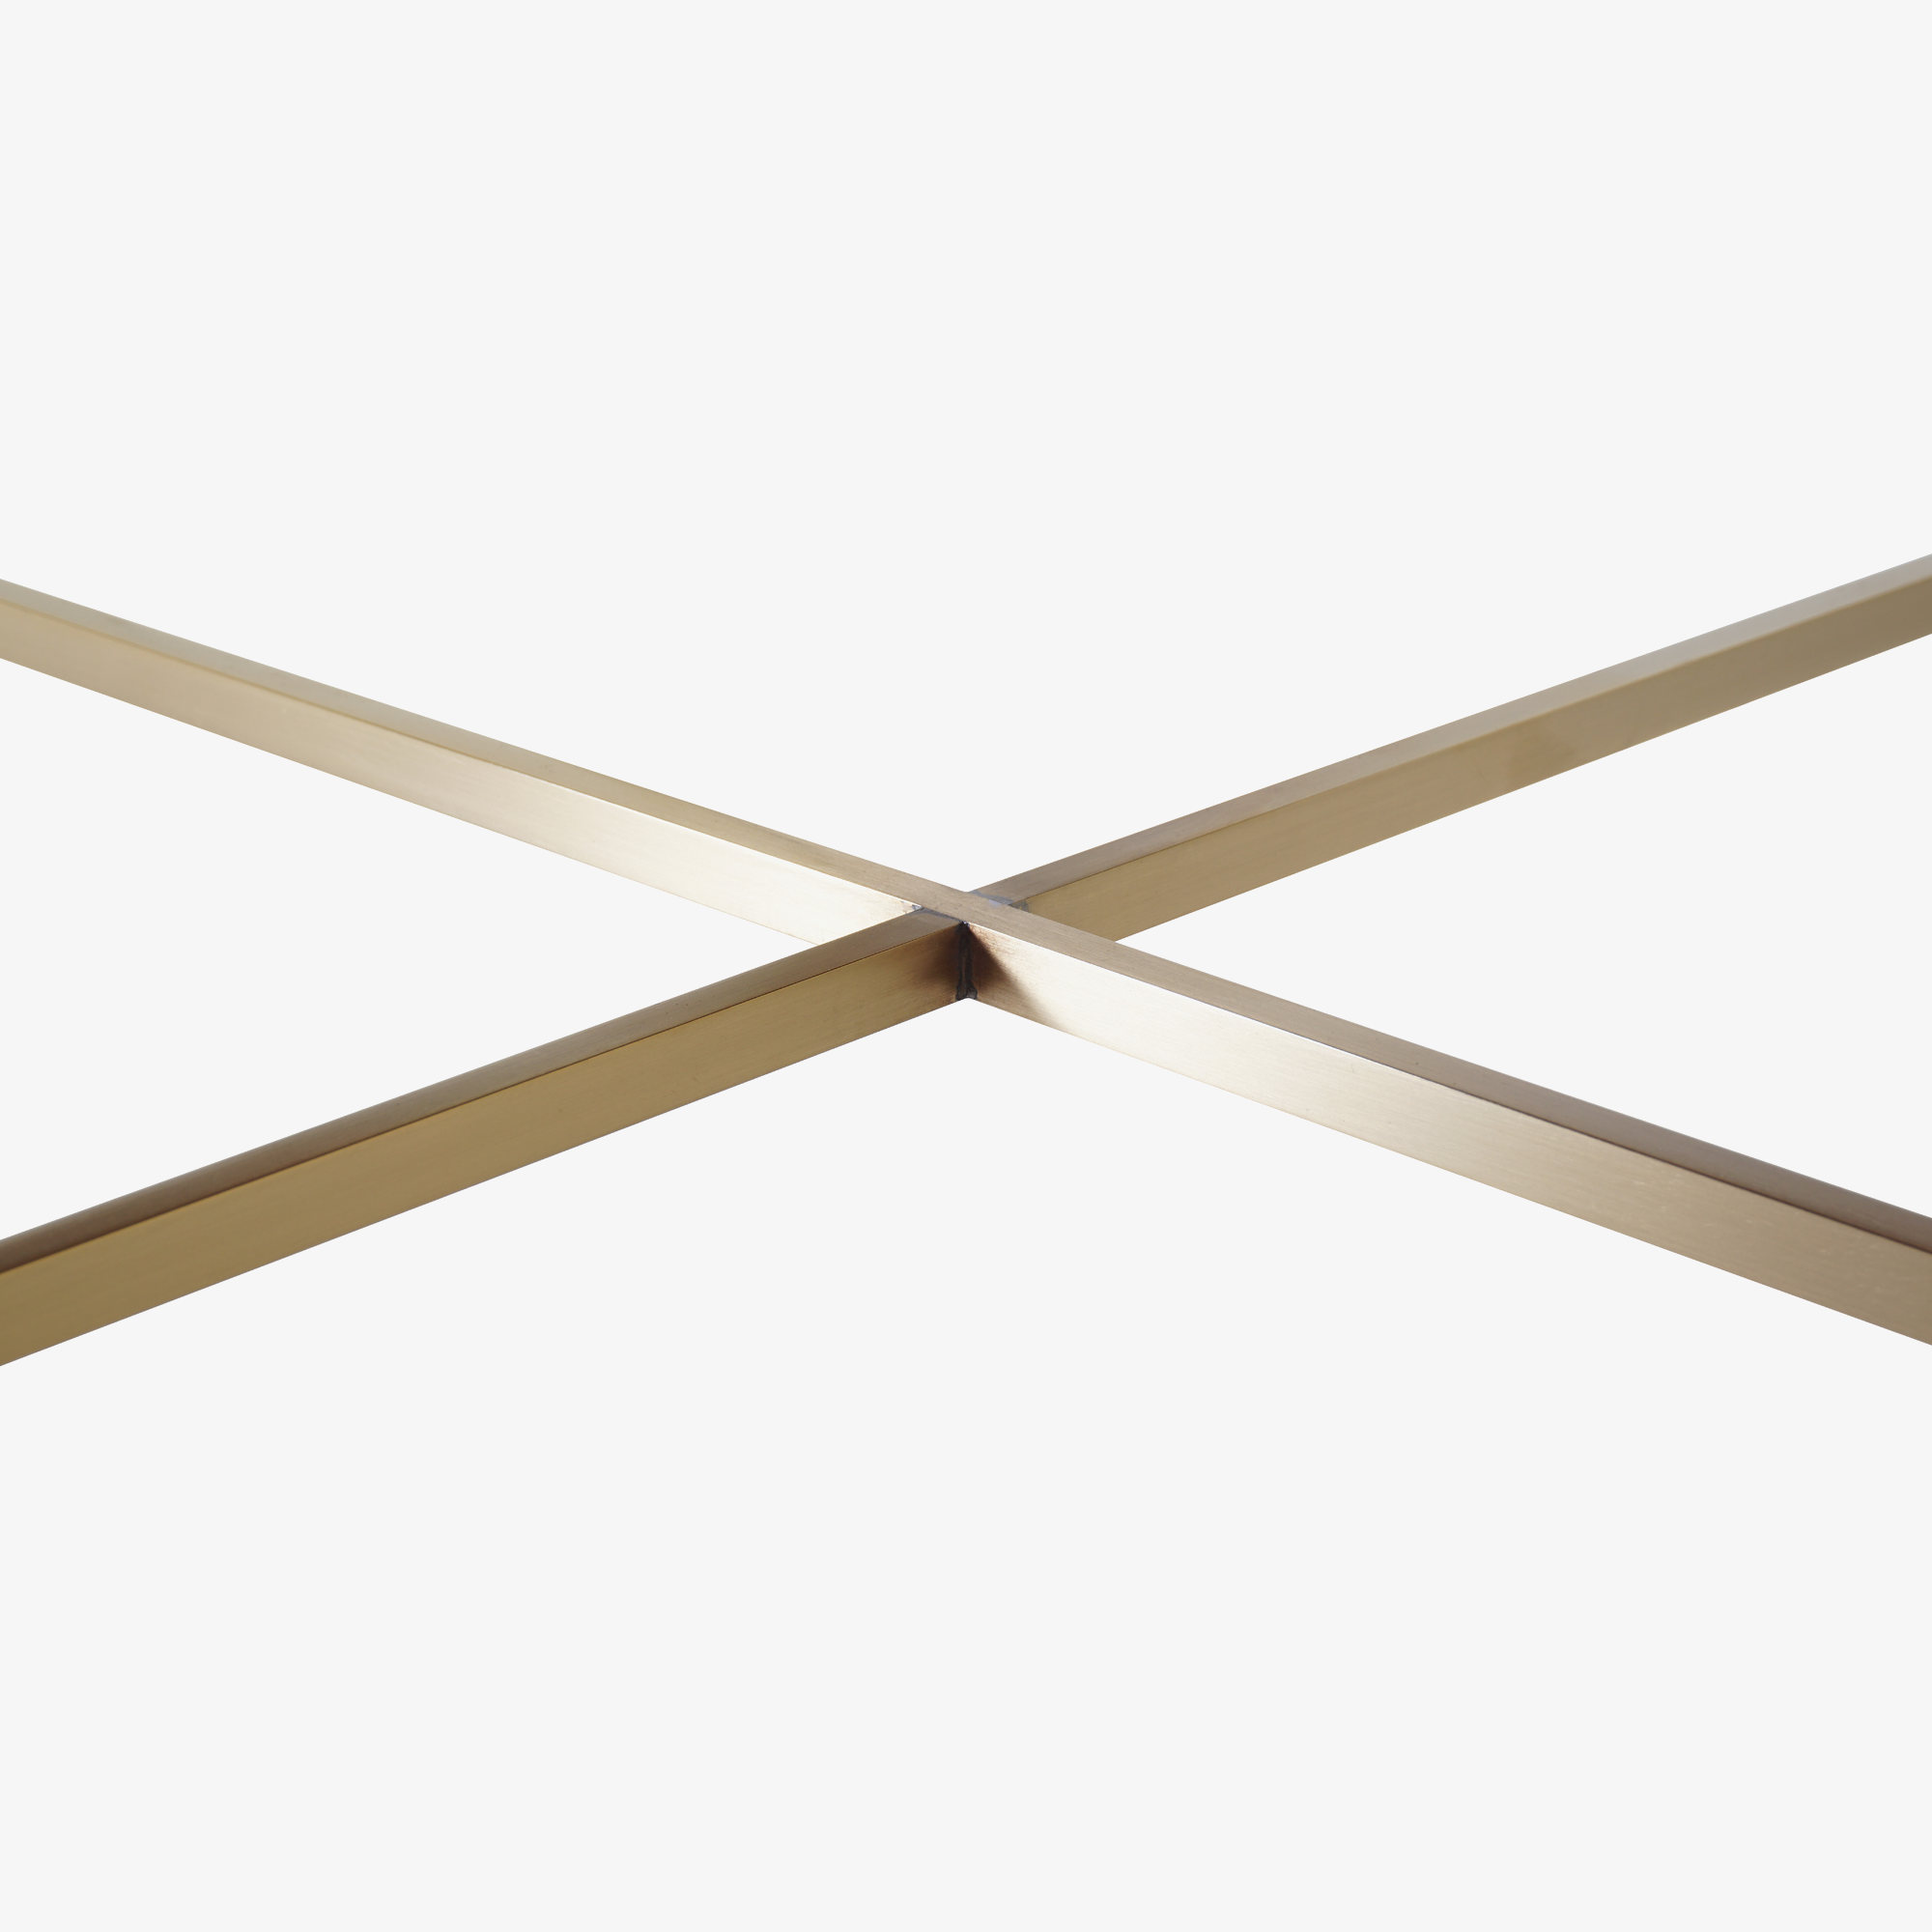 Brass Cross Stretcher Table in Rosewood7.png